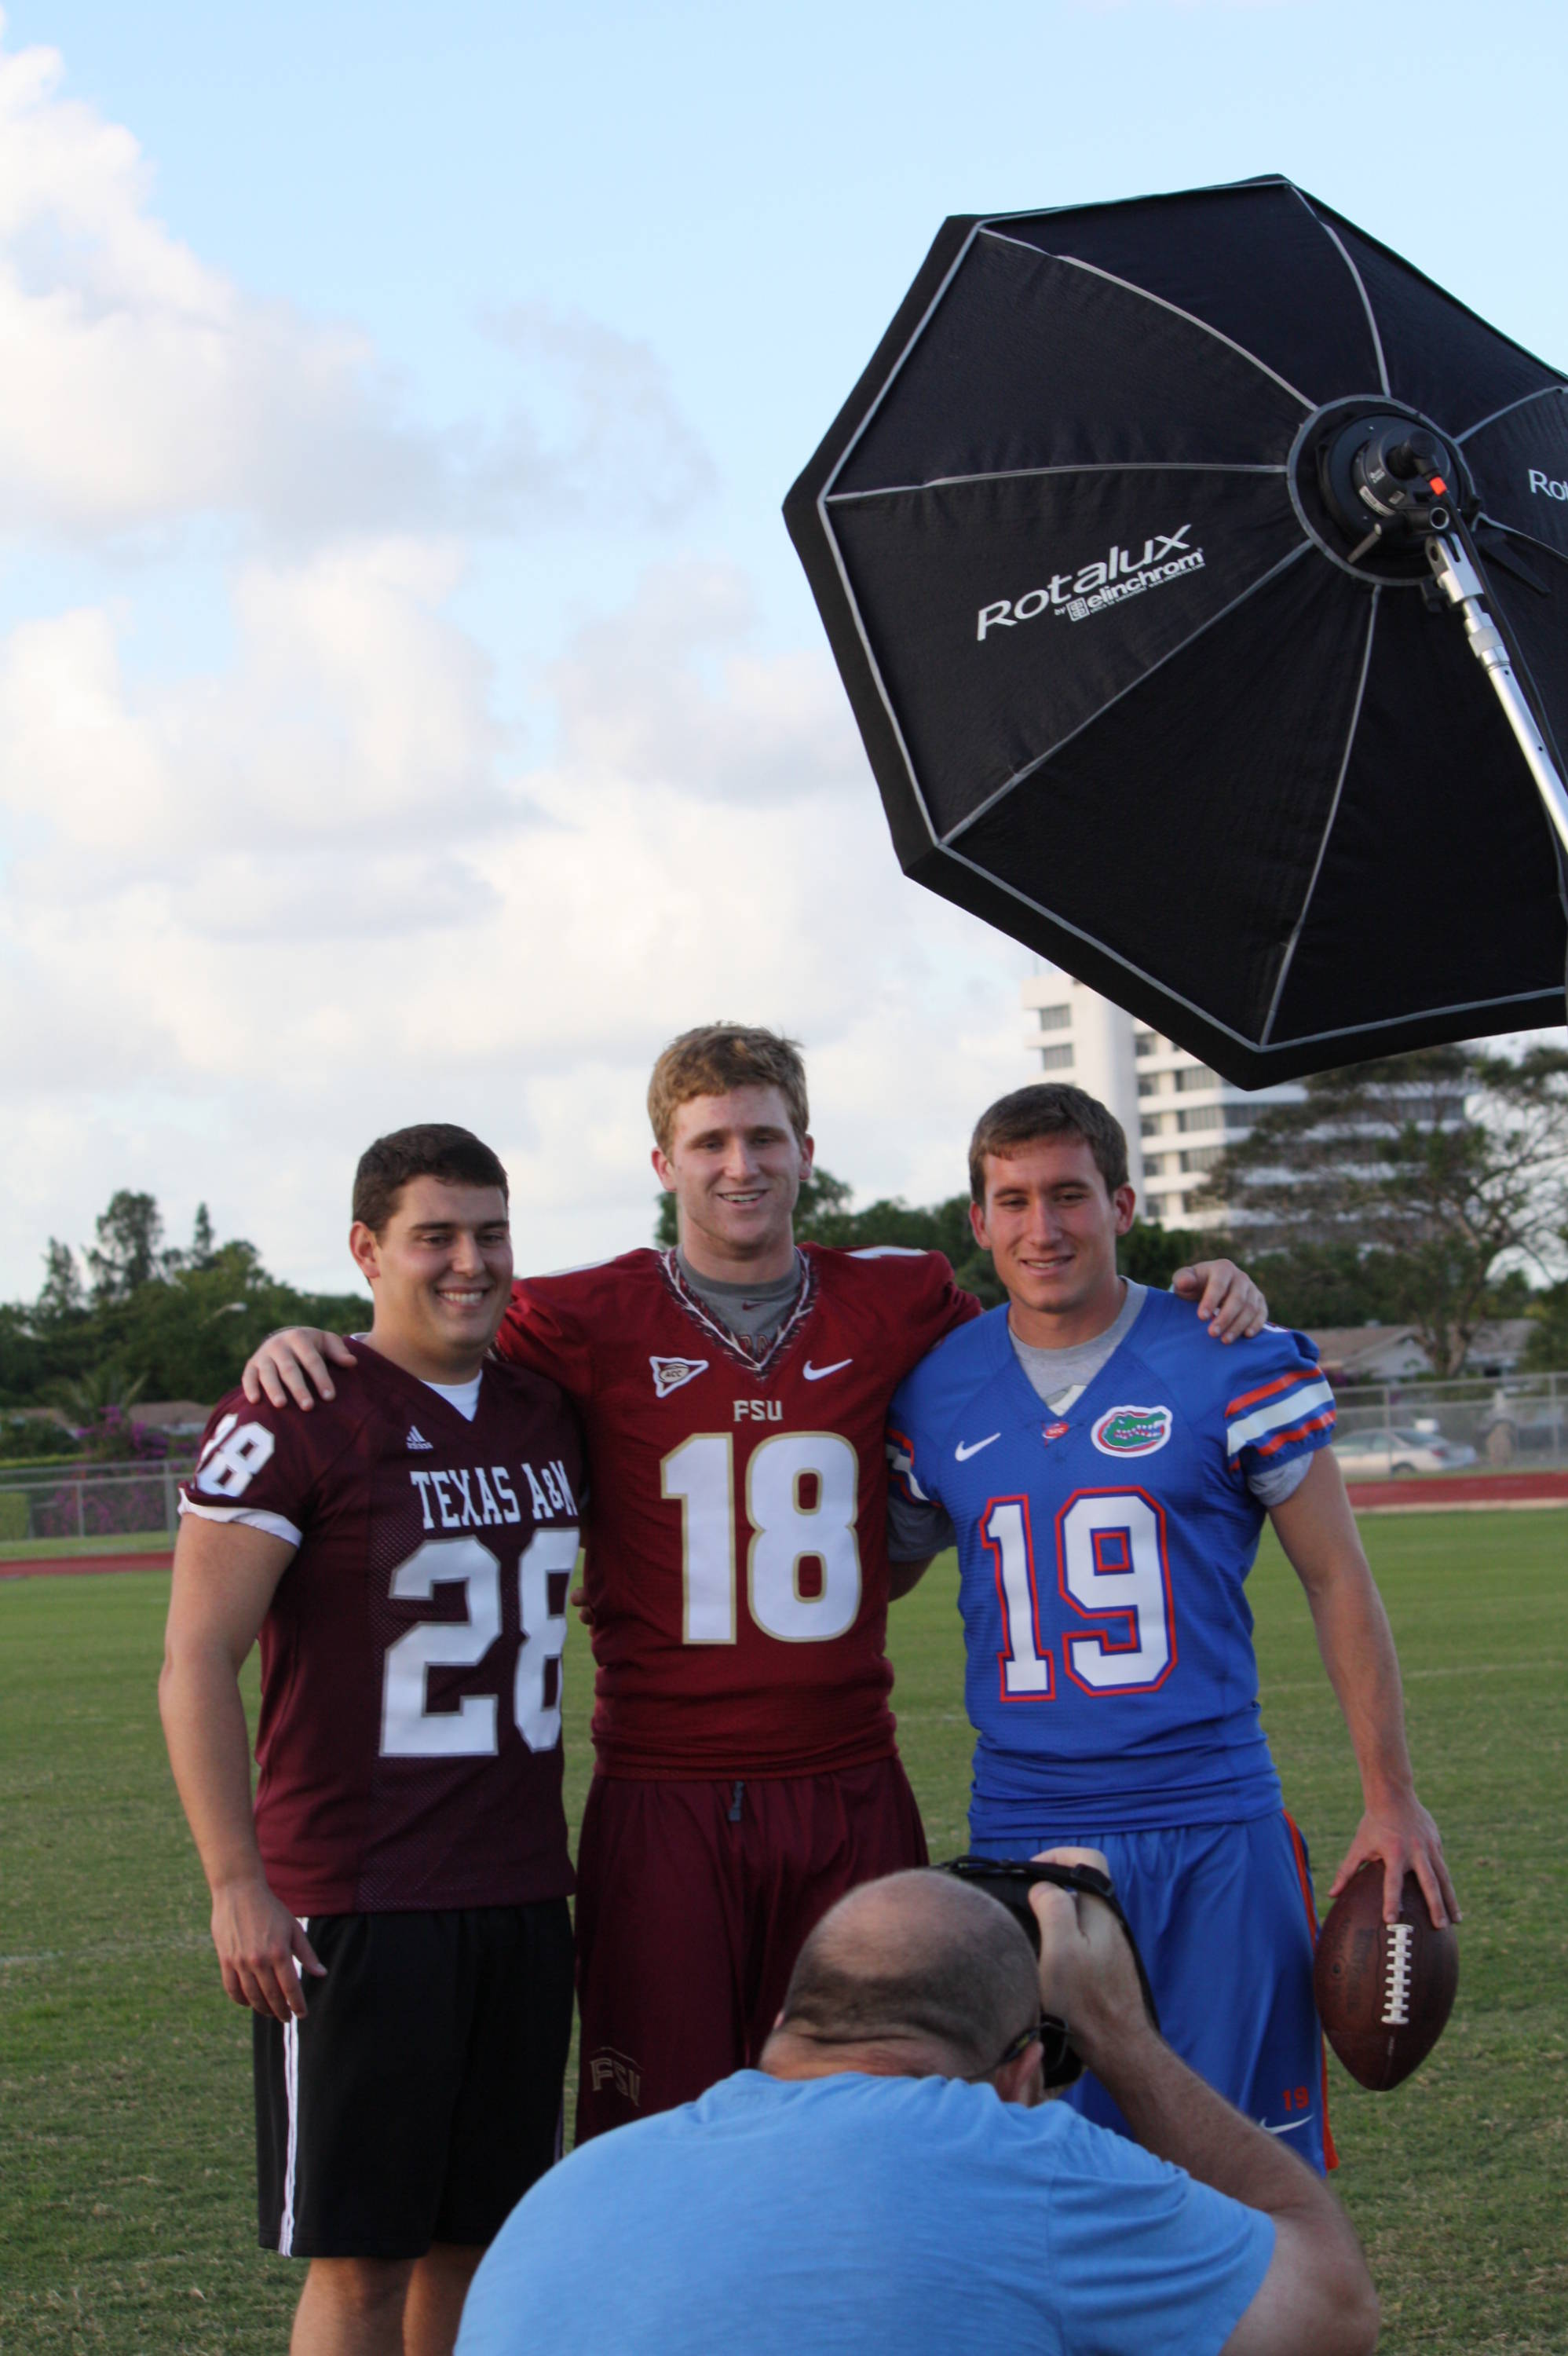 The players had a number of media opportunities and photo shoots over the course of two days in West Palm Beach.